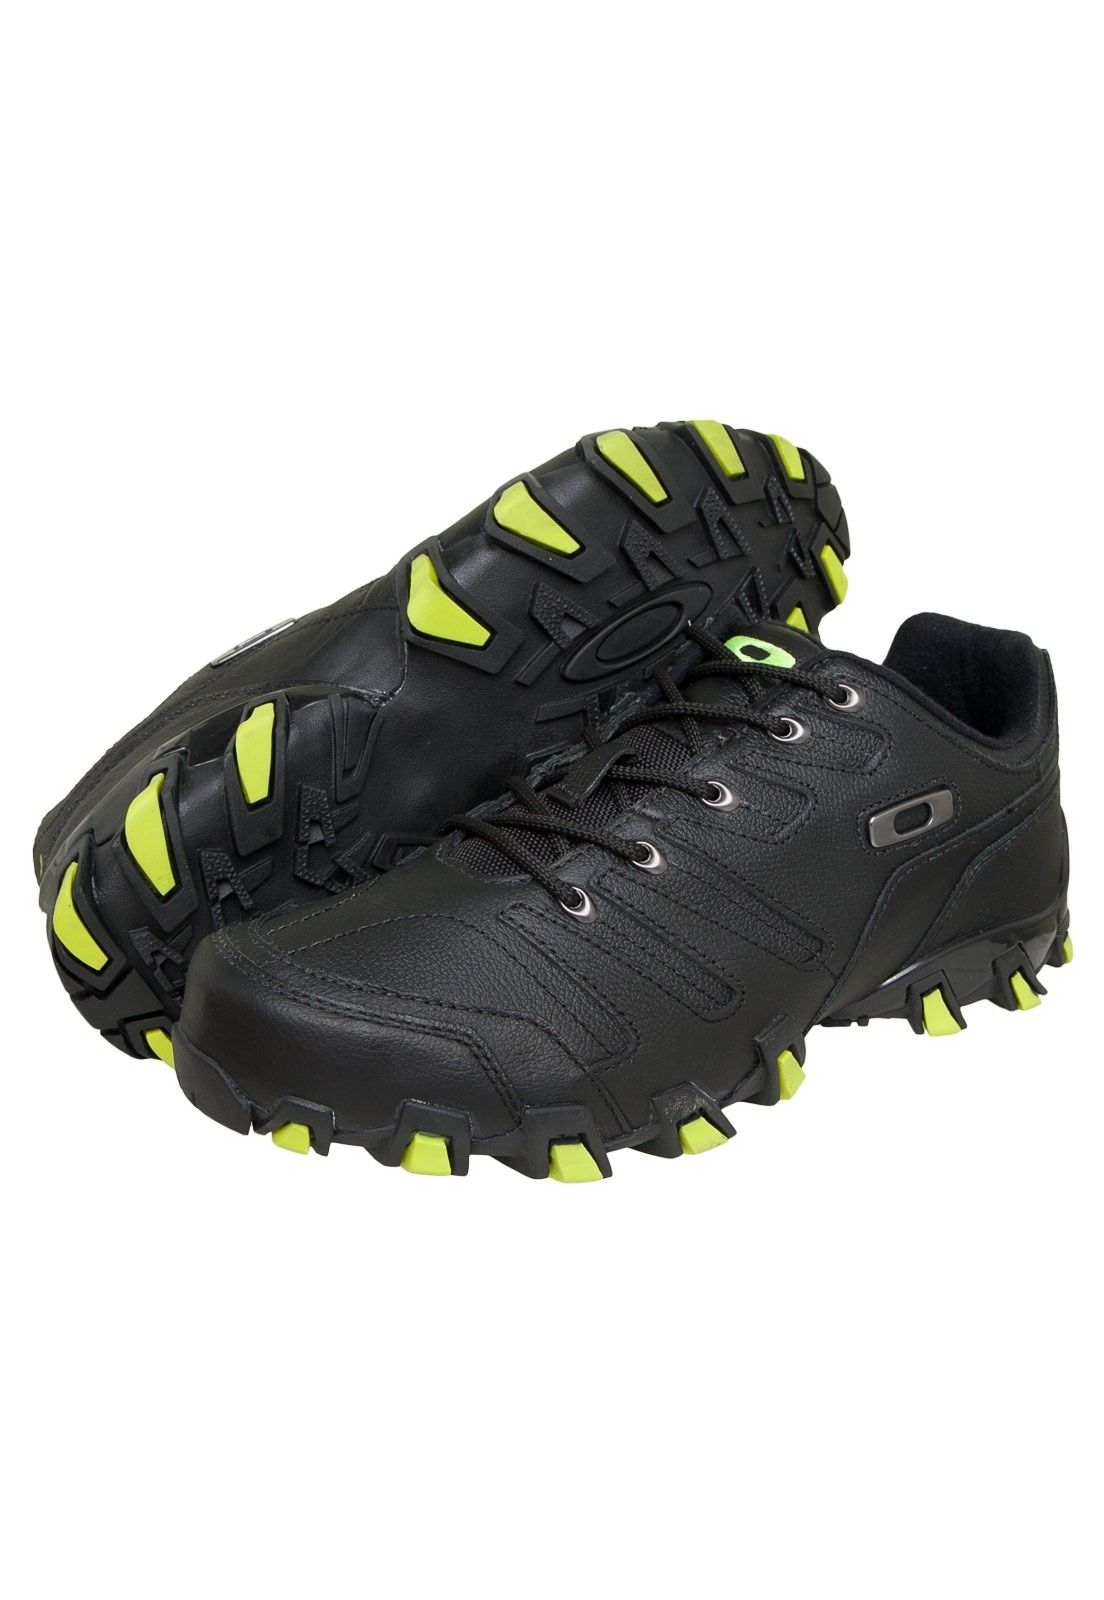 Oakley Shoes, From Brazil - Oakley-Tênis-Oakley-Theeth-Sqr-Preto-4312-9290361-1-zoom.jpg